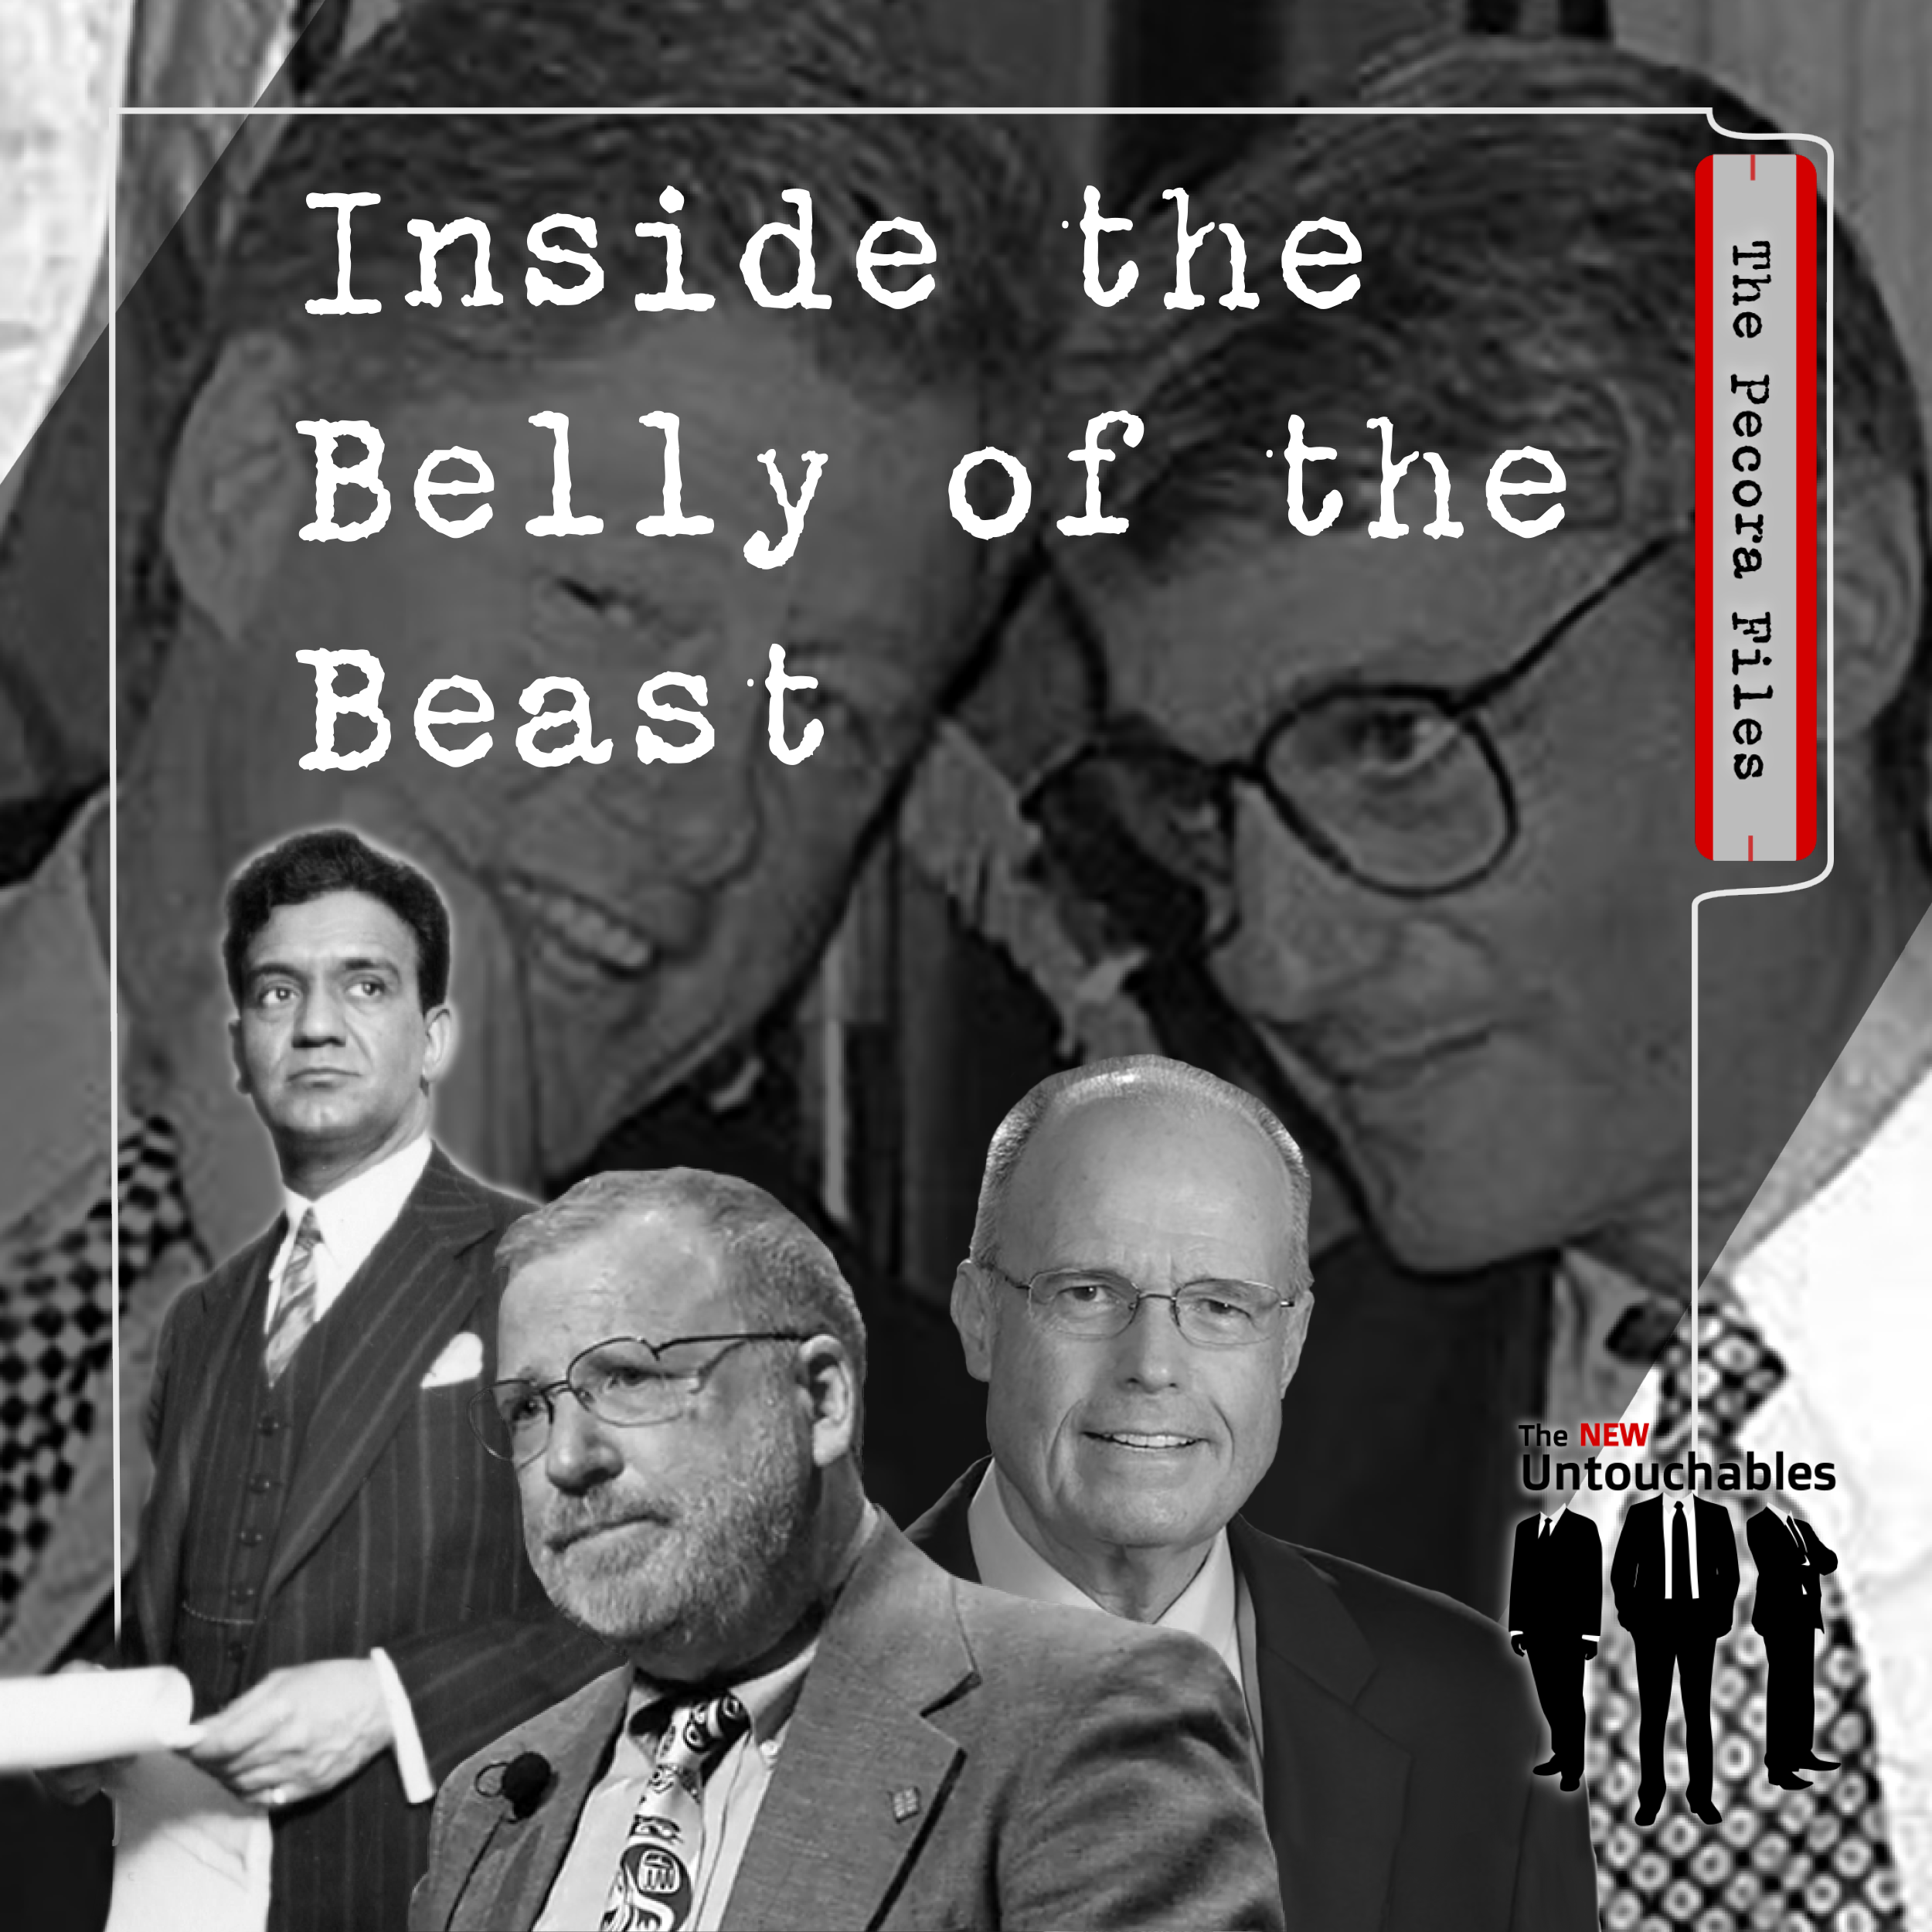 EP 4: Inside The Belly of the Beast